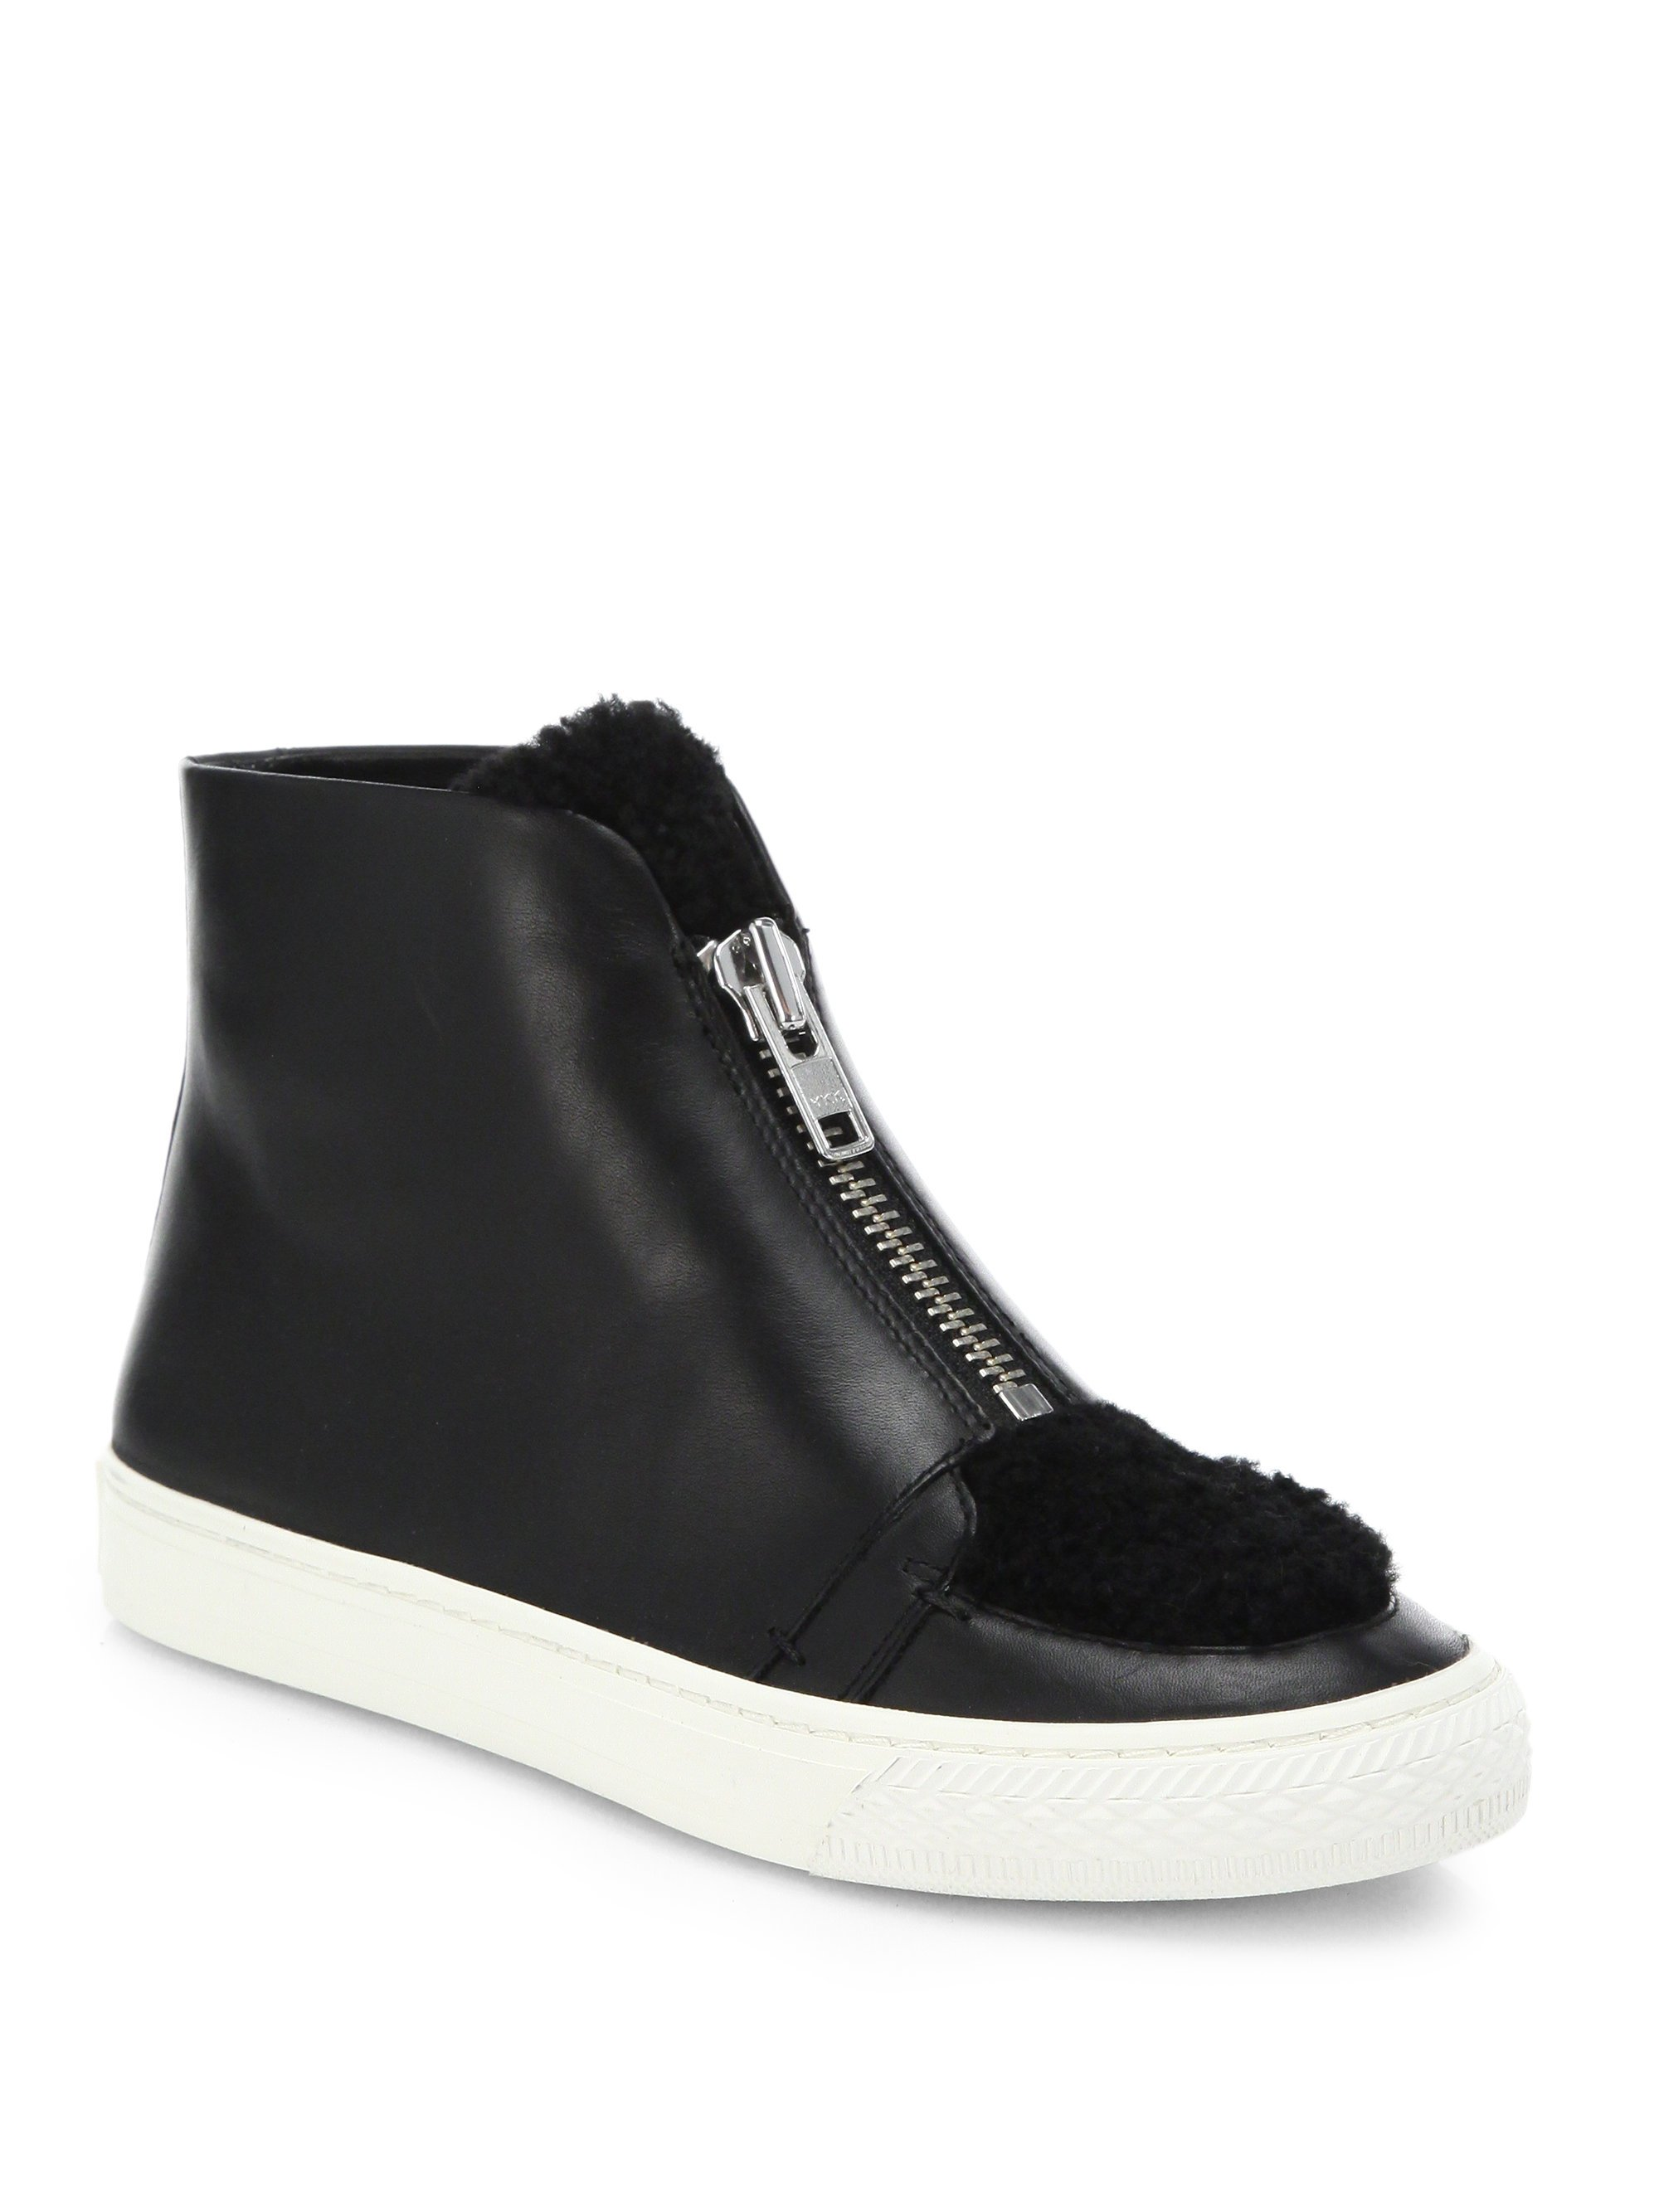 Loeffler Randall Leather High-Top Sneakers buy cheap outlet store prices cheap online OdqiYZx